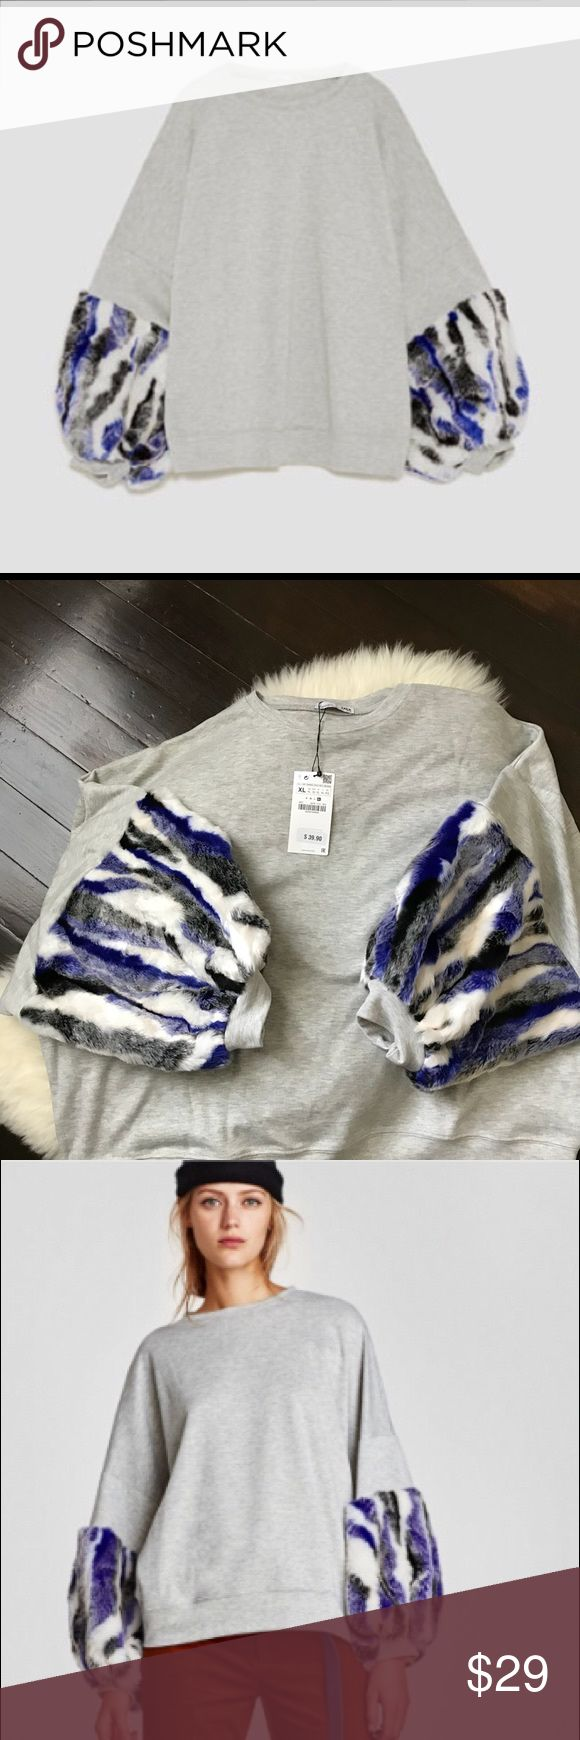 NWT Zara sweatshirt with contrasting sleeves ✔️SZ XL. Round neck sweatshirt with long puffy sleeves in contrasting fabric.   This item is online/store now.  PRICE IS FIRM  -11/40- Zara Tops Sweatshirts & Hoodies